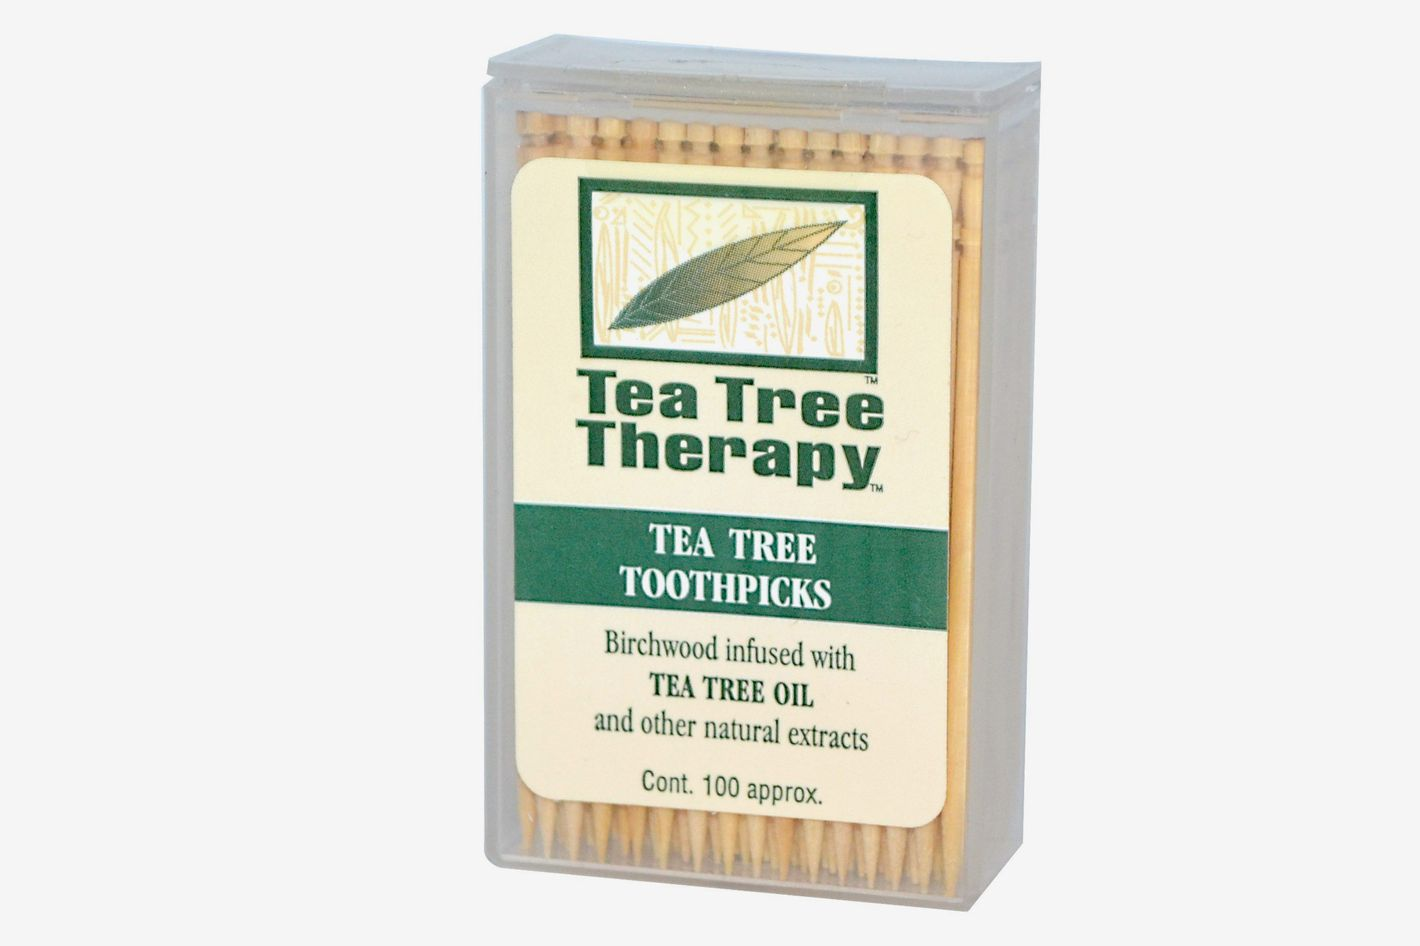 Tea Tree Therapy (2-Pack)